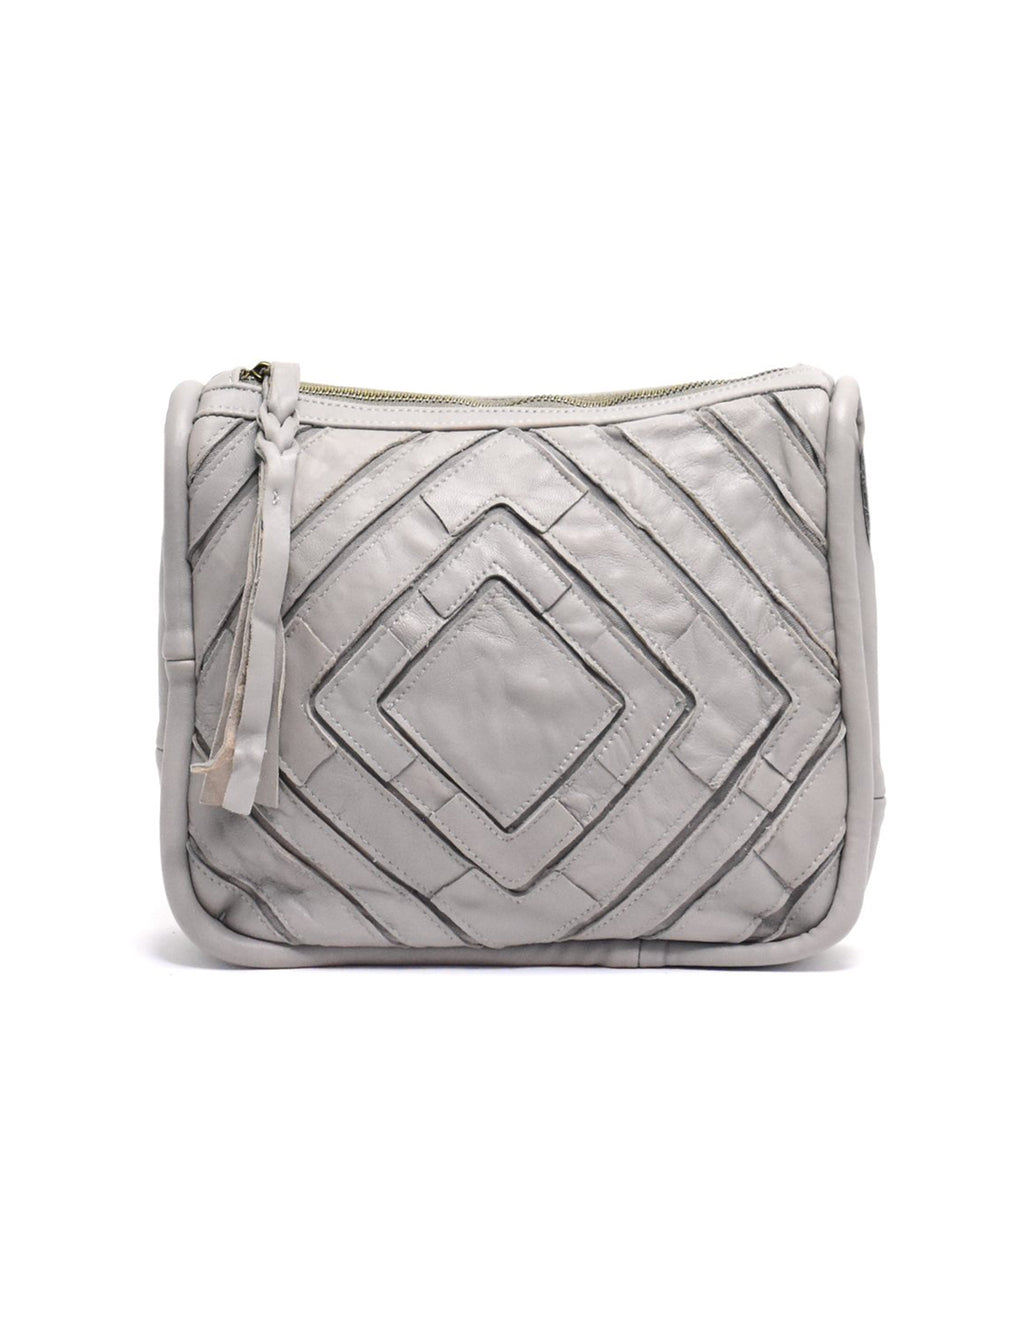 Benecio Patchwork Crossbody in Light Grey